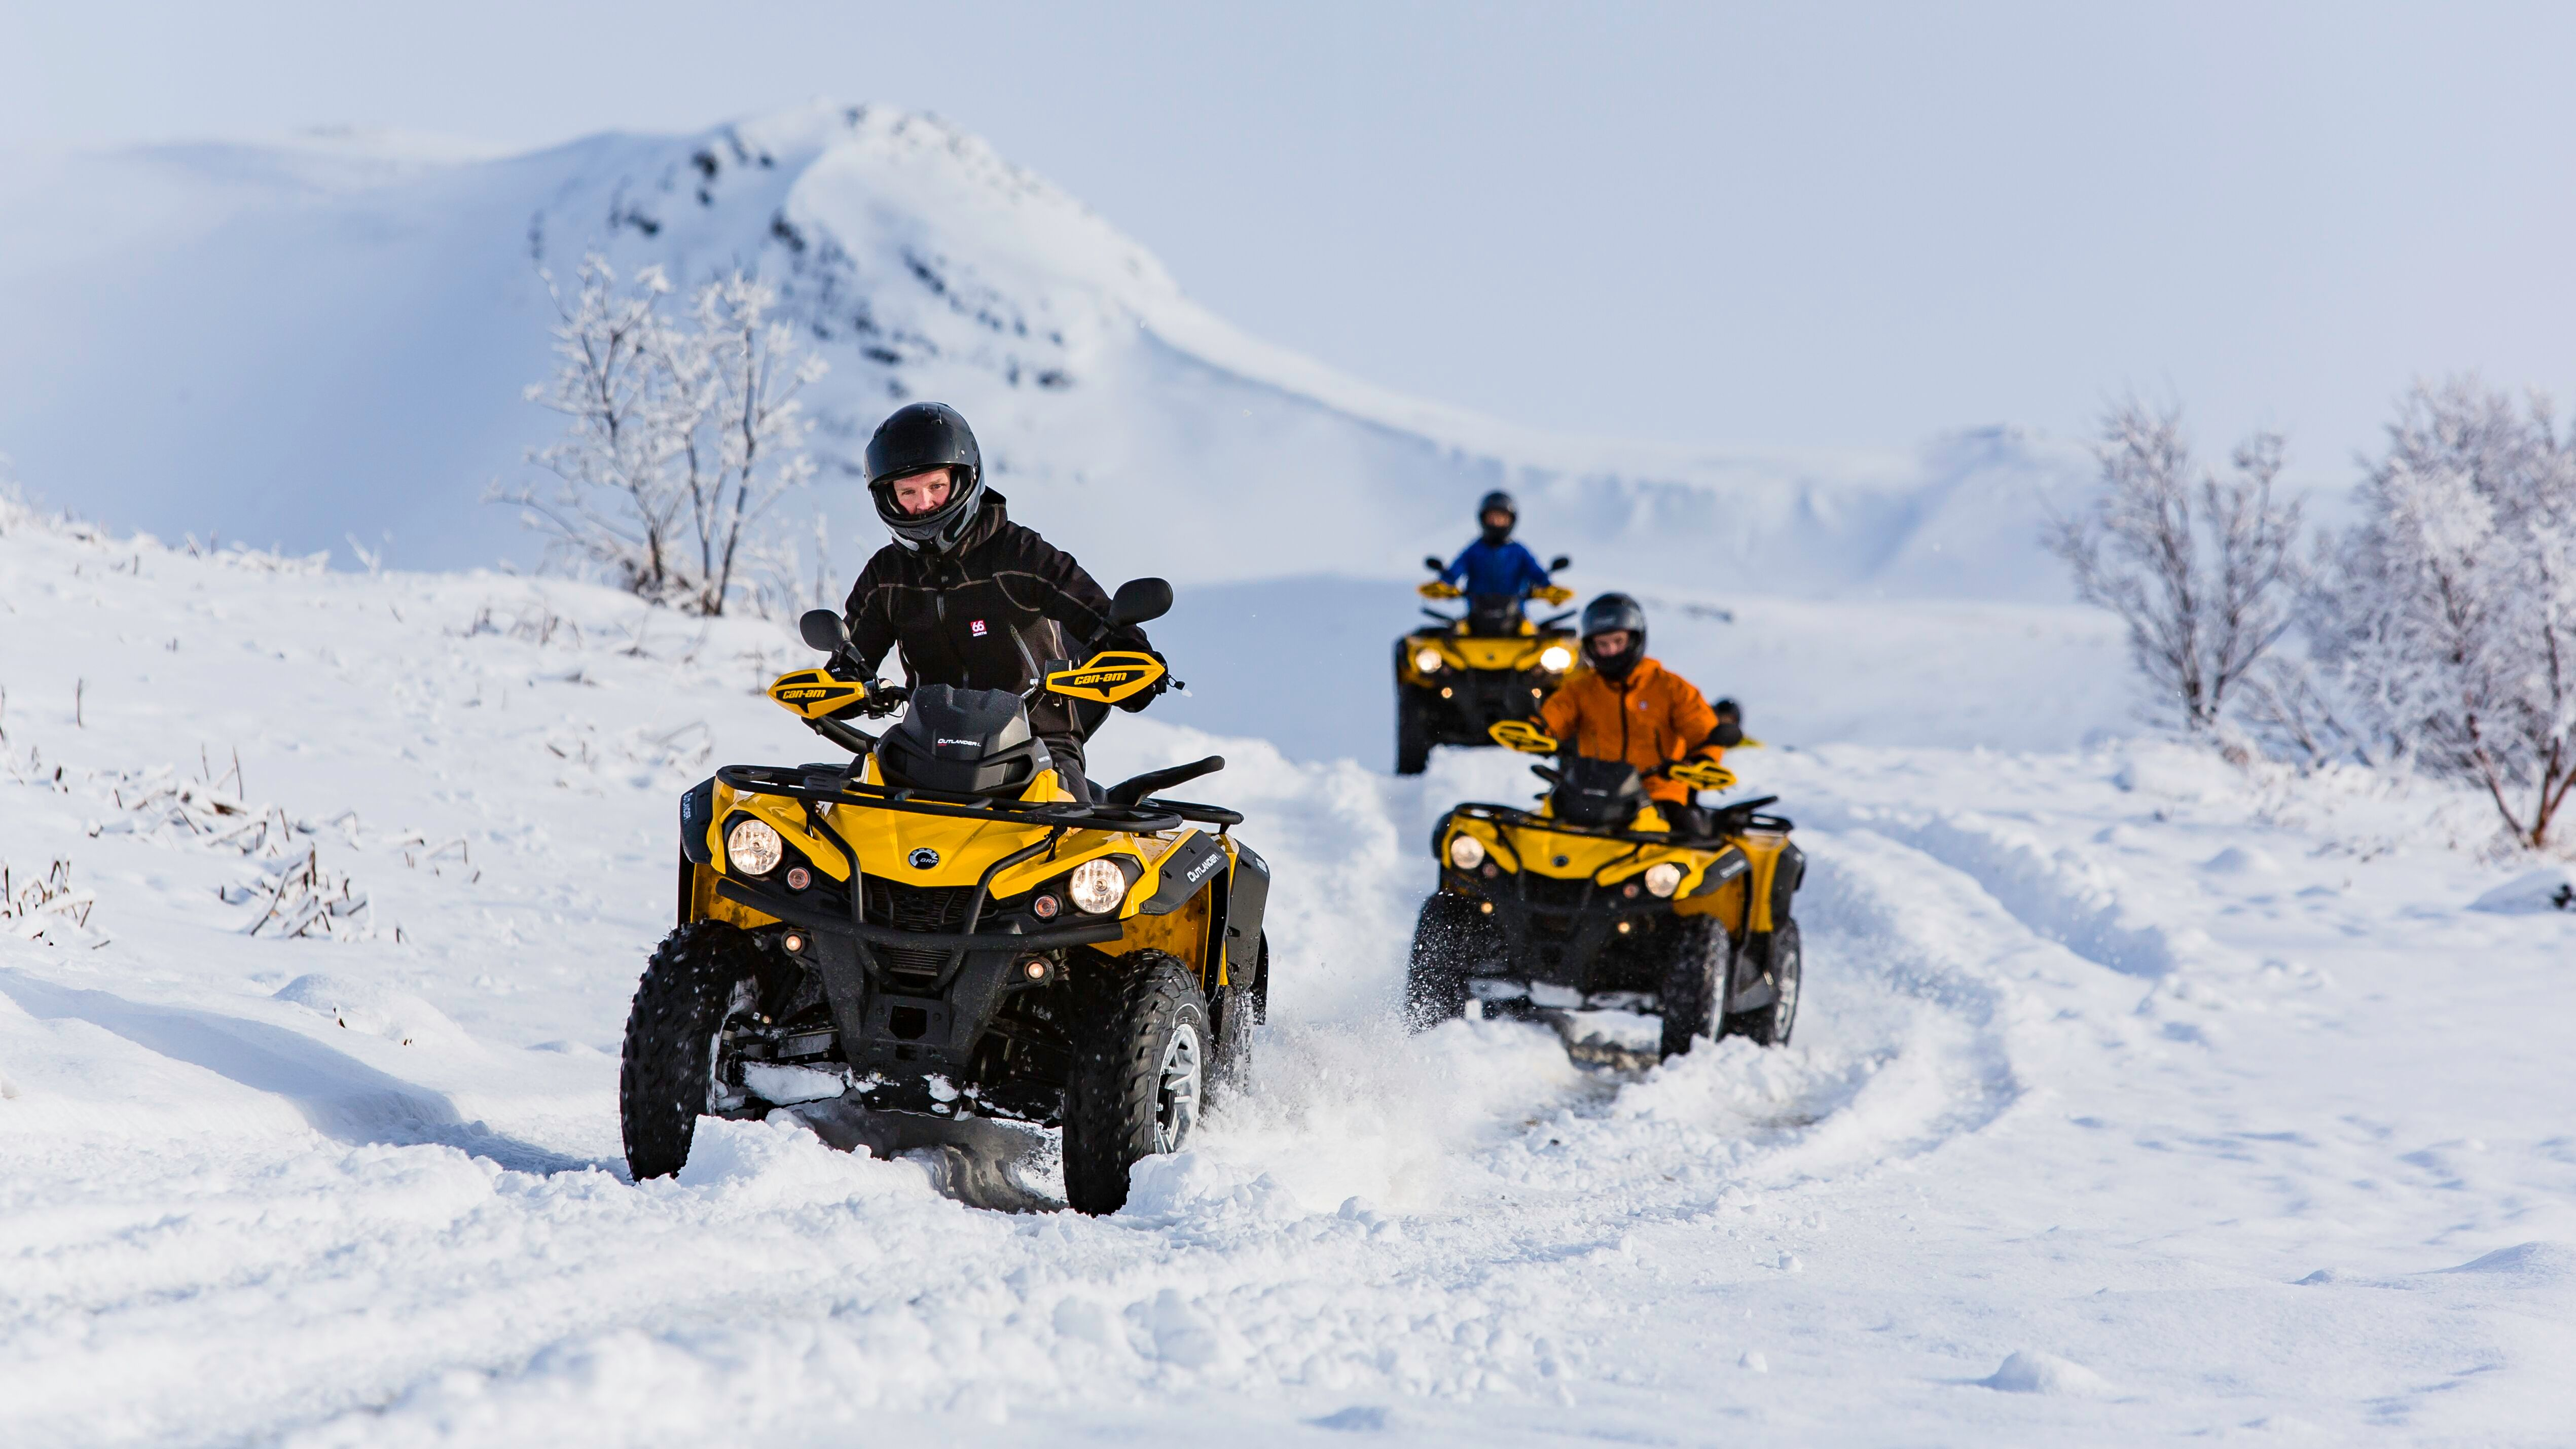 ATV QUAD BIKE tour on snowy mountains in Reykjavik